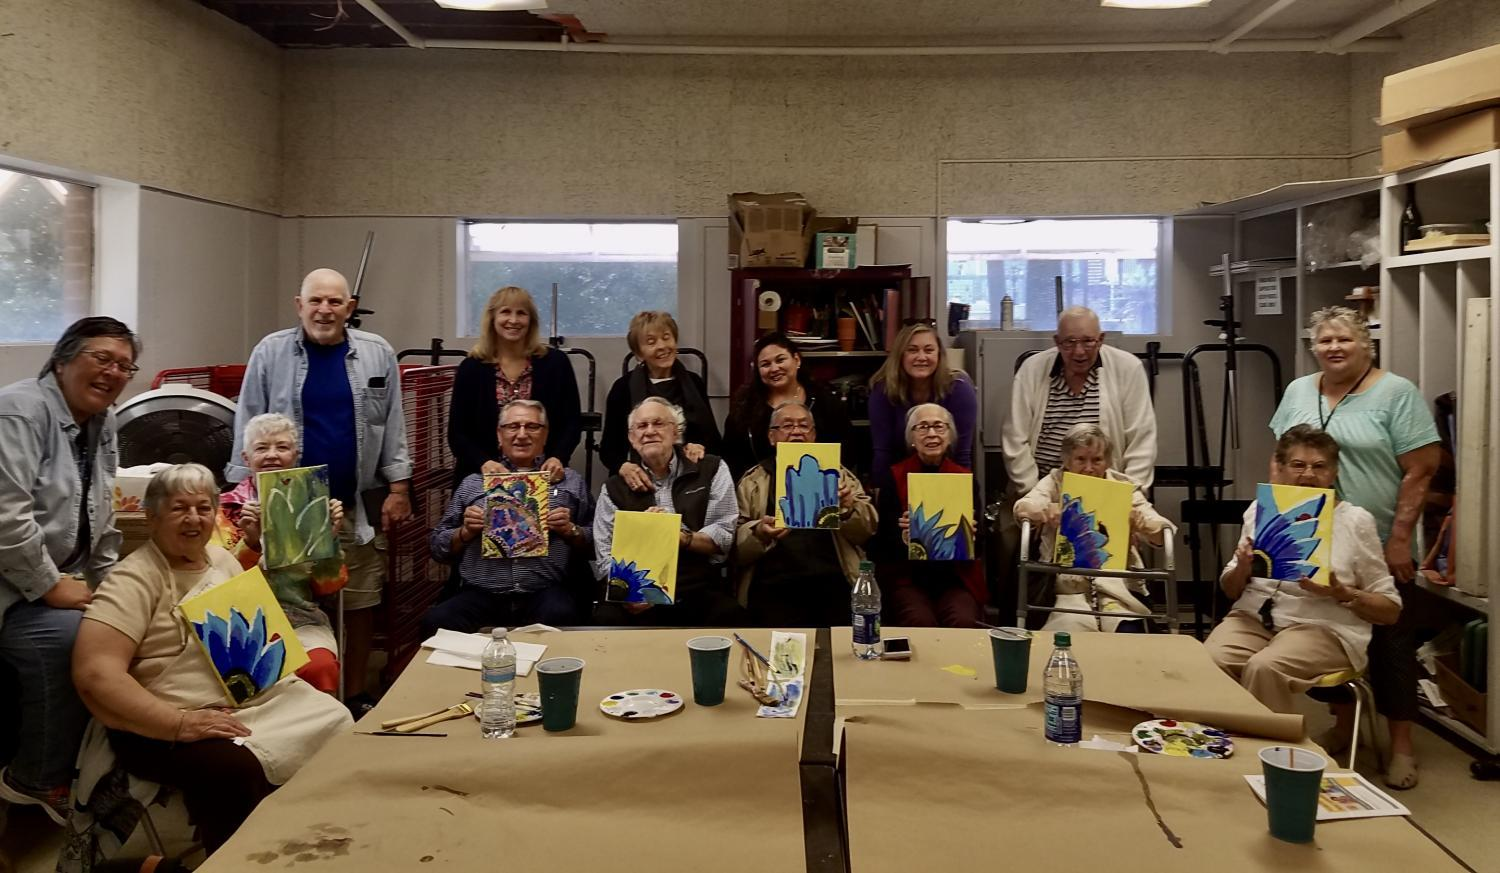 Participants in Phoenix Center for the Arts